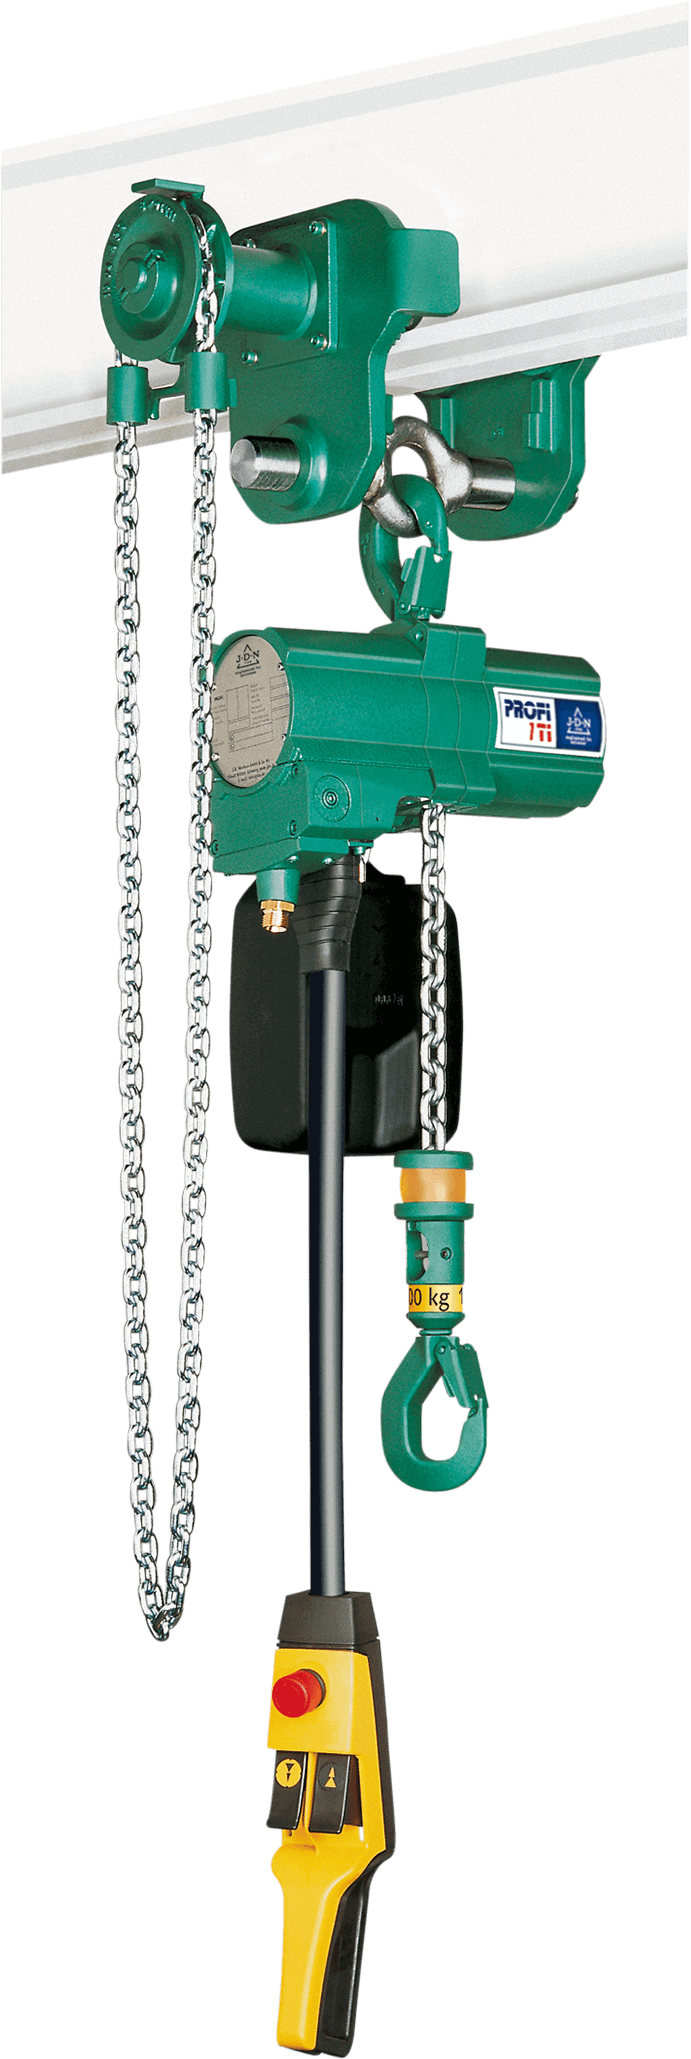 Profi 1TI in Reel Chain Trolley